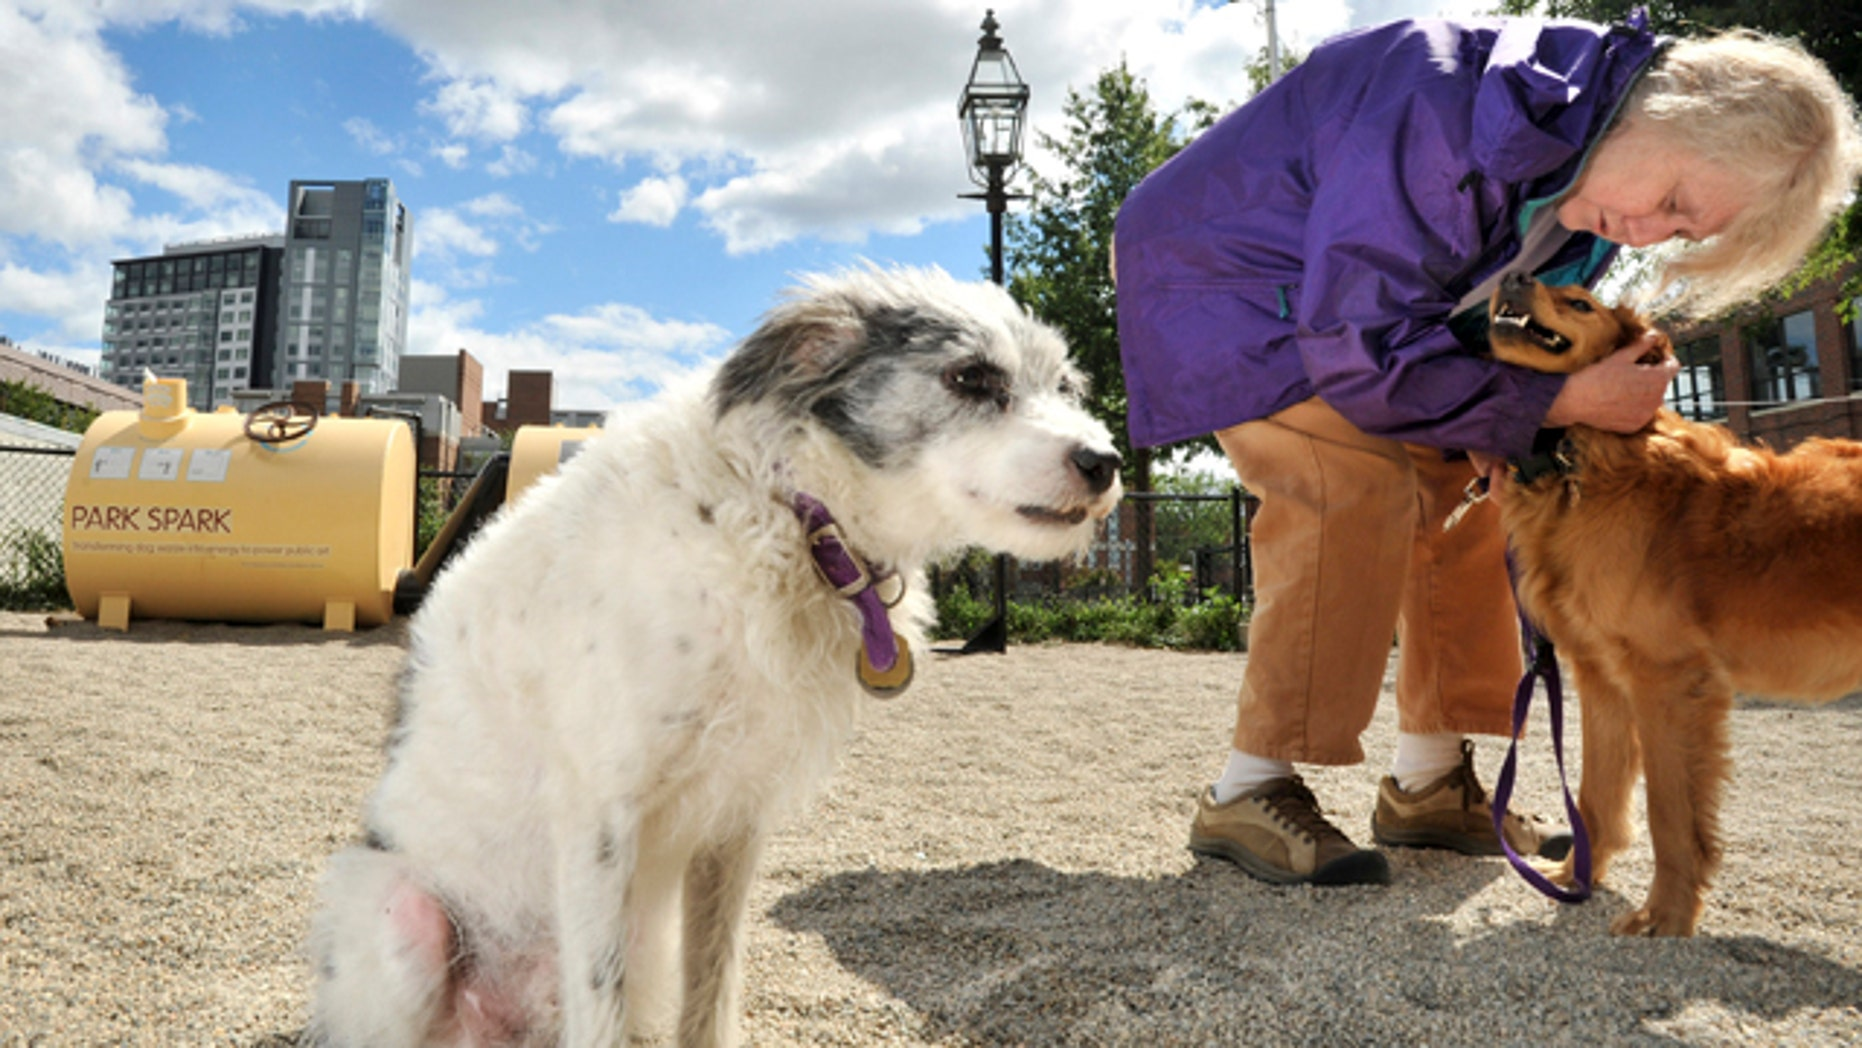 """Louisa Solano of Cambridge, Mass., hugs a dog while she and her dog Macedo, left, visit a dog park in Cambridge. Boston artist Matthew Mazzotta devised the """"Park Spark,"""" background left, which powers a connected gas light with the methane gas given off by droppings collected at the park."""